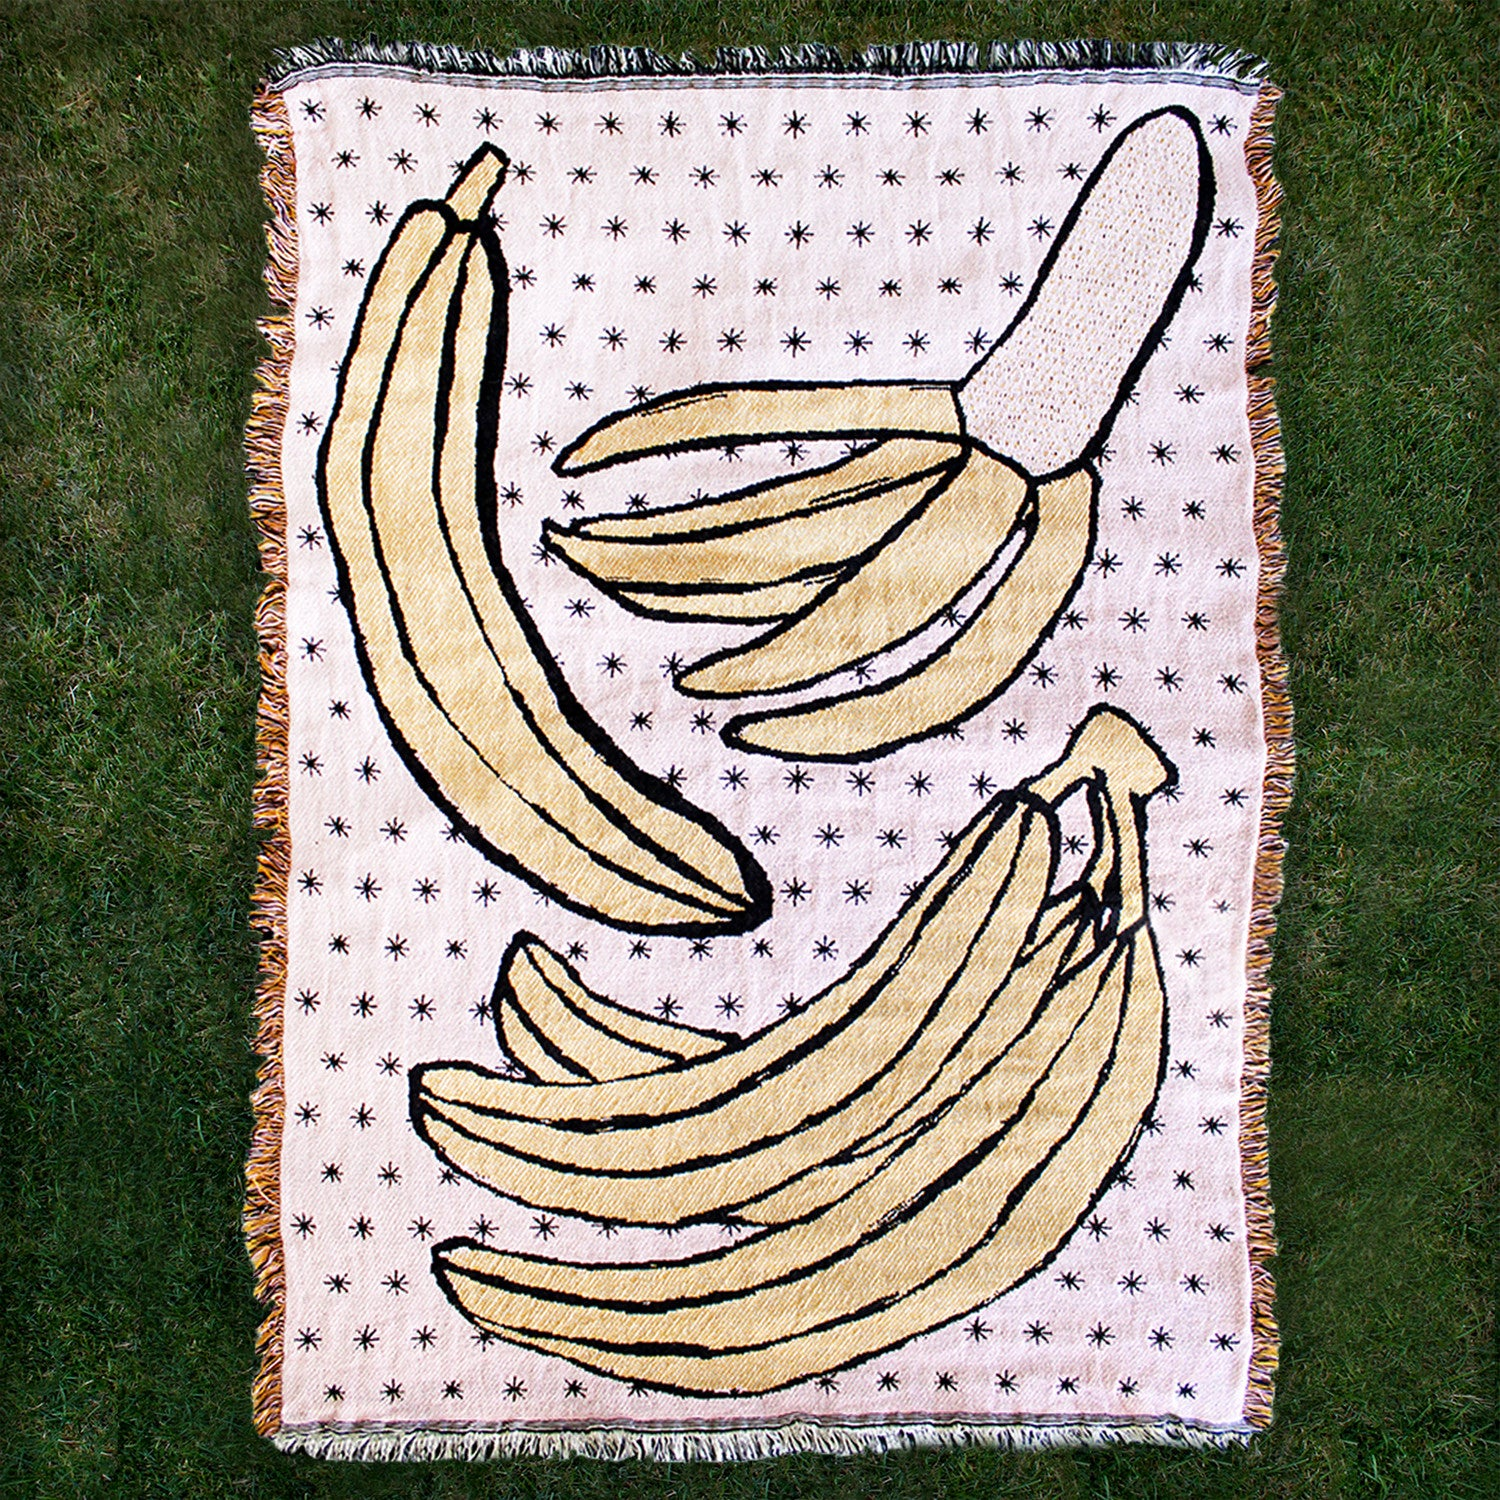 throw blanket with bananas, bright colors - overhead view laying flat on grass; made in usa by calhoun & company | carpenter hill